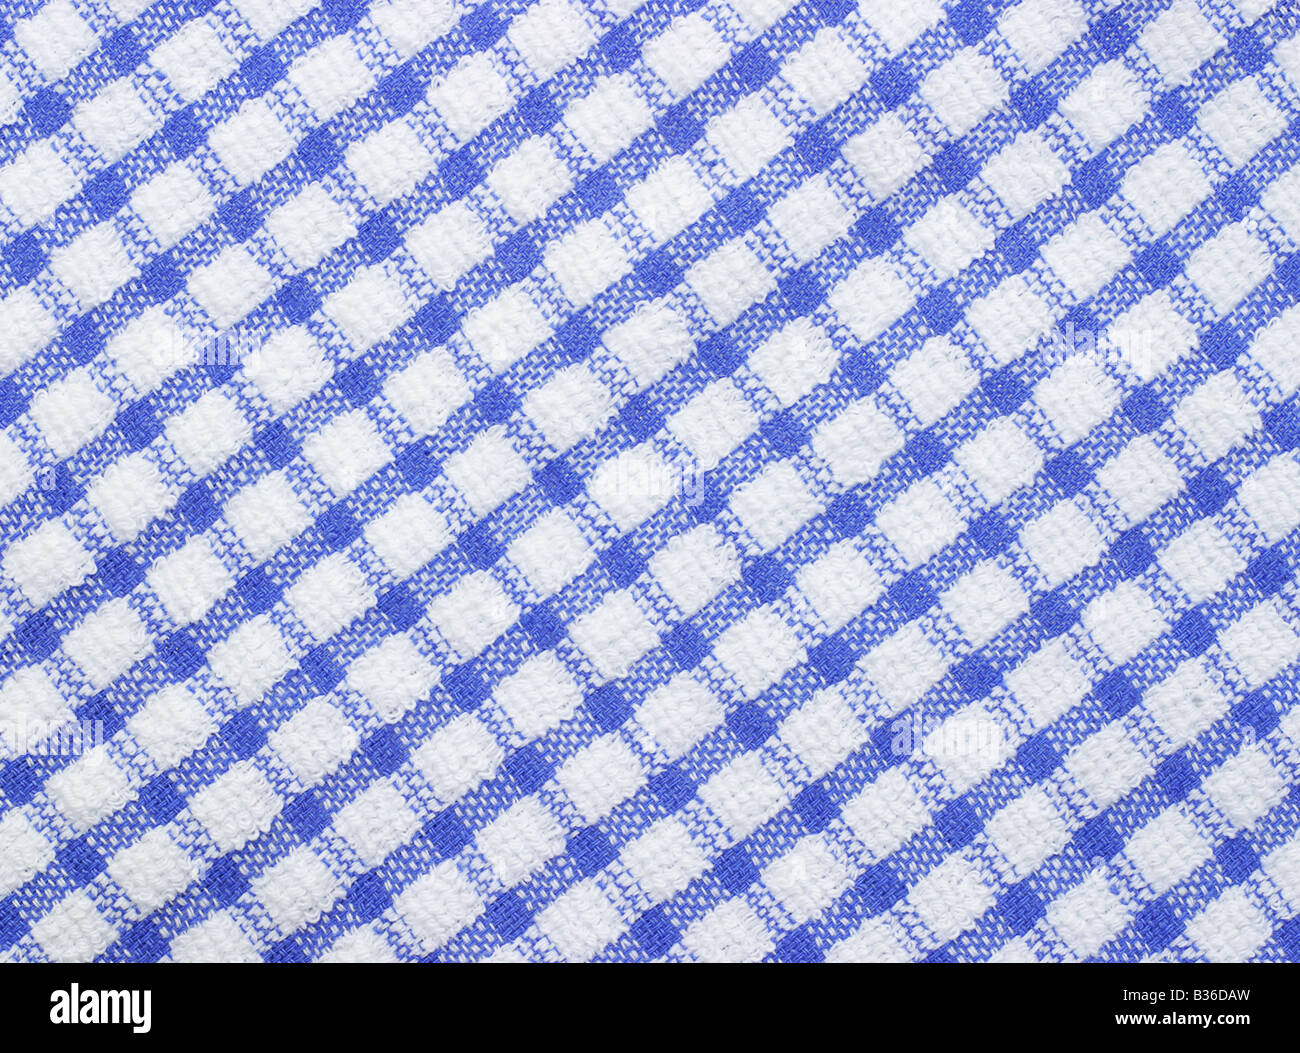 Gingham surface texture for background - Stock Image